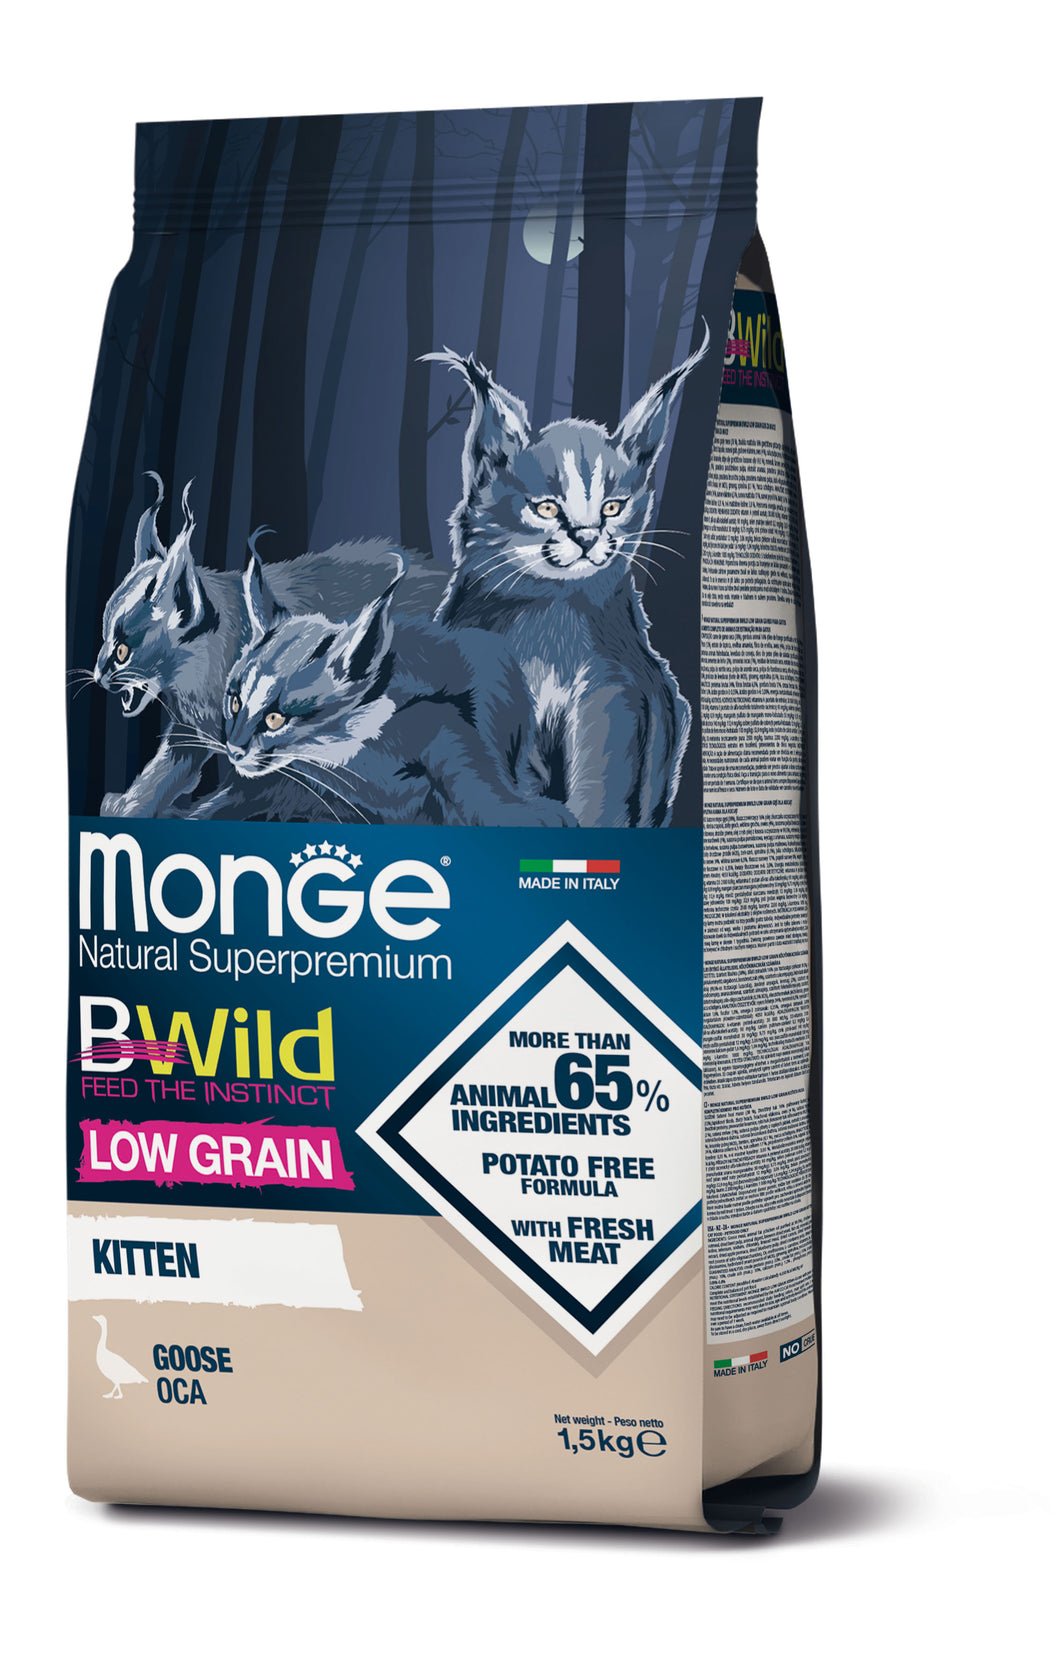 Monge Cat - BWild - LOW GRAIN - Kitten Goose